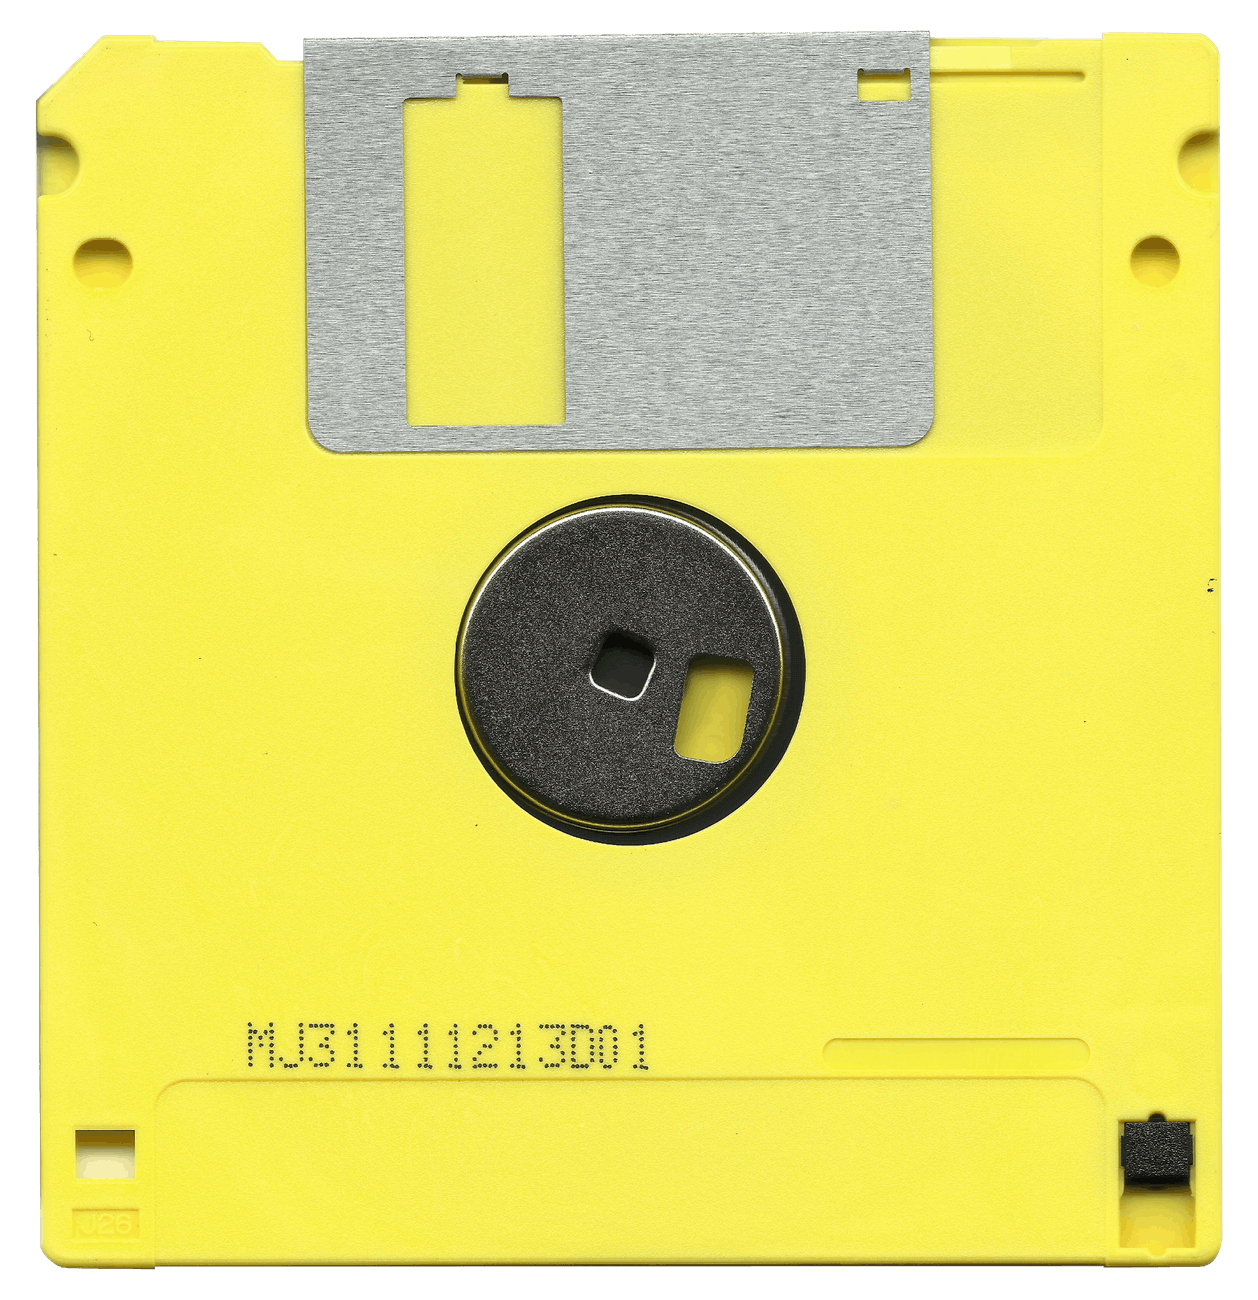 screenshot of a floppy disk